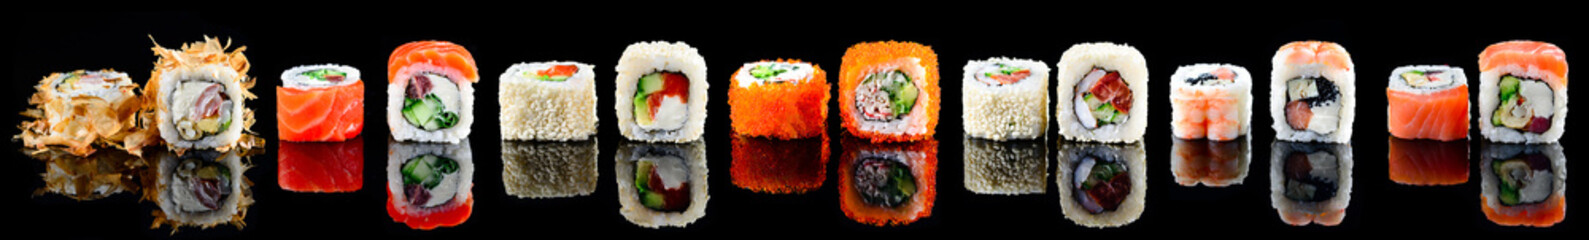 Fototapeta Do kuchni large set of sushi maki isolated